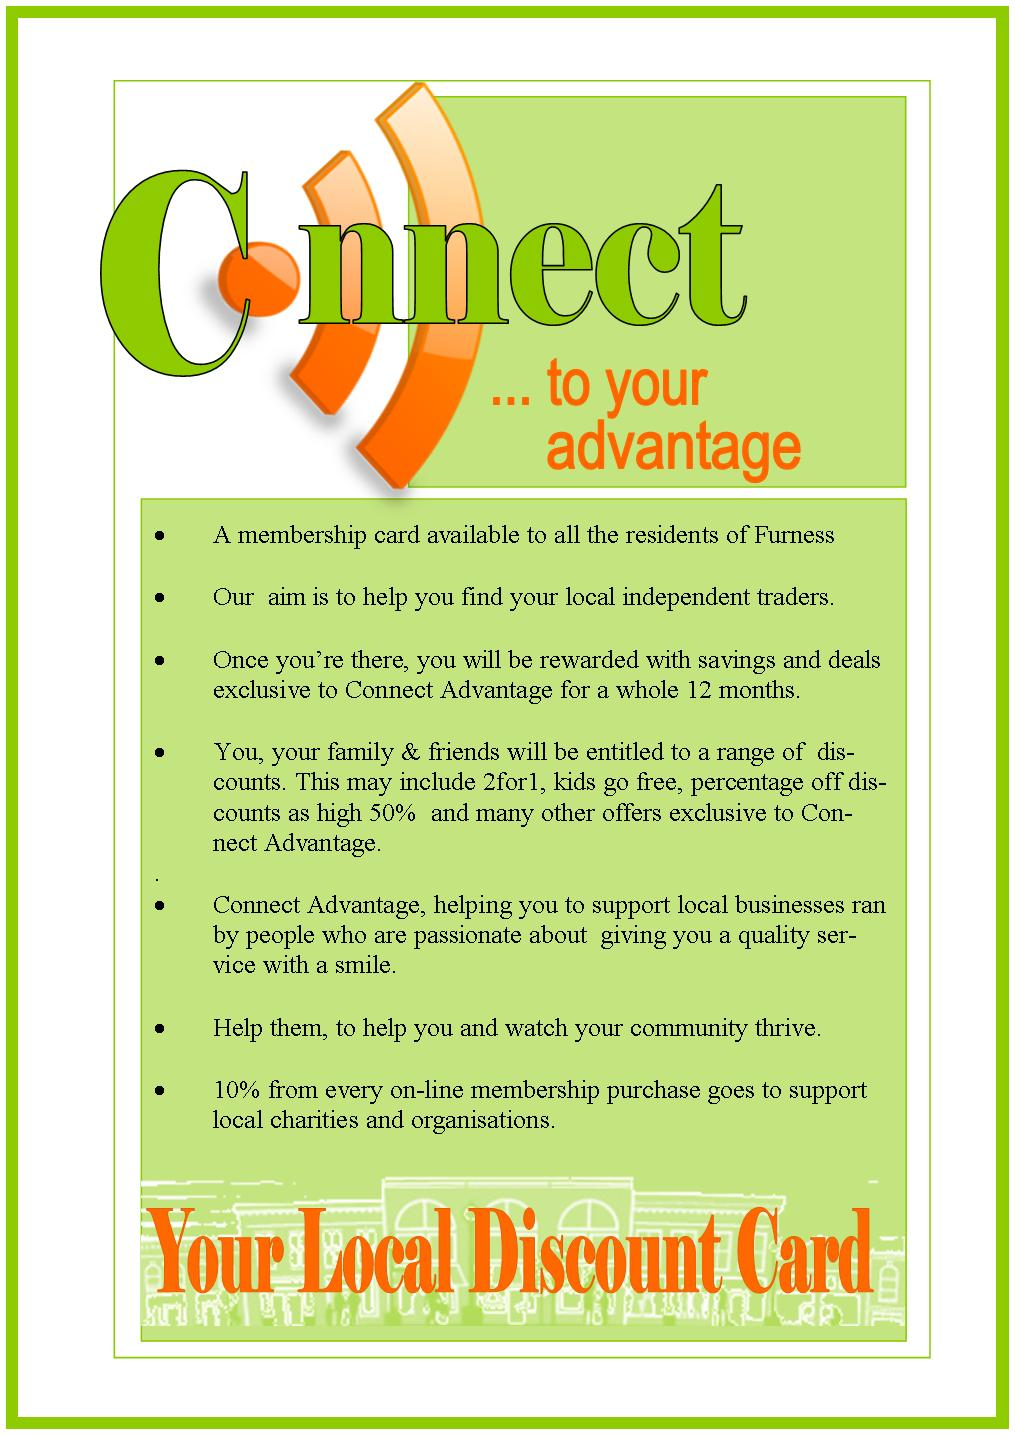 2013 sees the launch of the Connect Advantage Card  Offering you exclusive offers, discounts and deals at local Attractions, Bars, Restaurants, Shops & Services.  Consciously choosing to support local businesses ensures Furness's valuable resources will be part of its future.